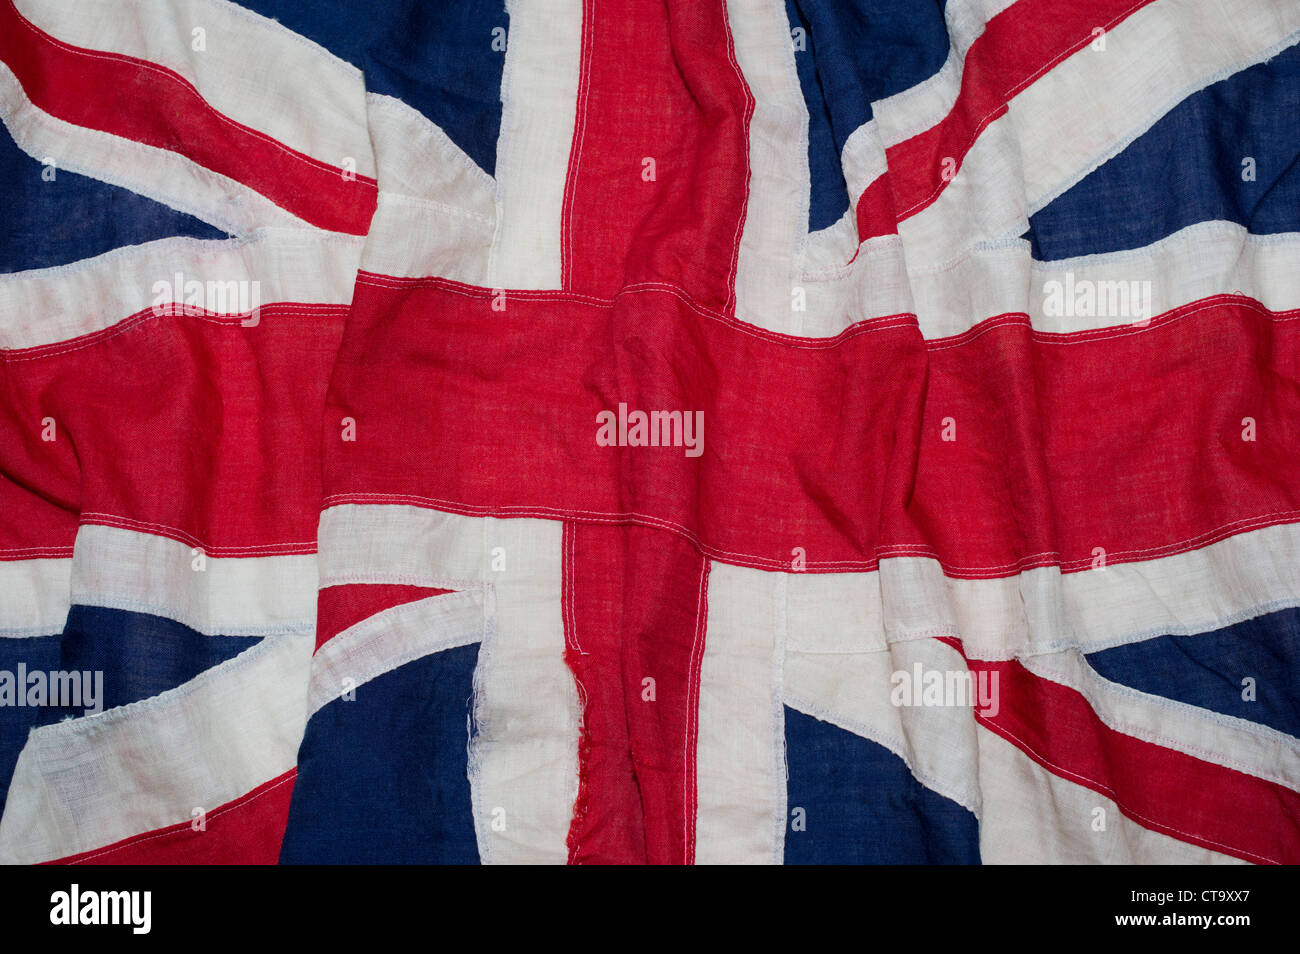 Vintage Union Jack Flag From Coronation Of Queen Elizabeth 2